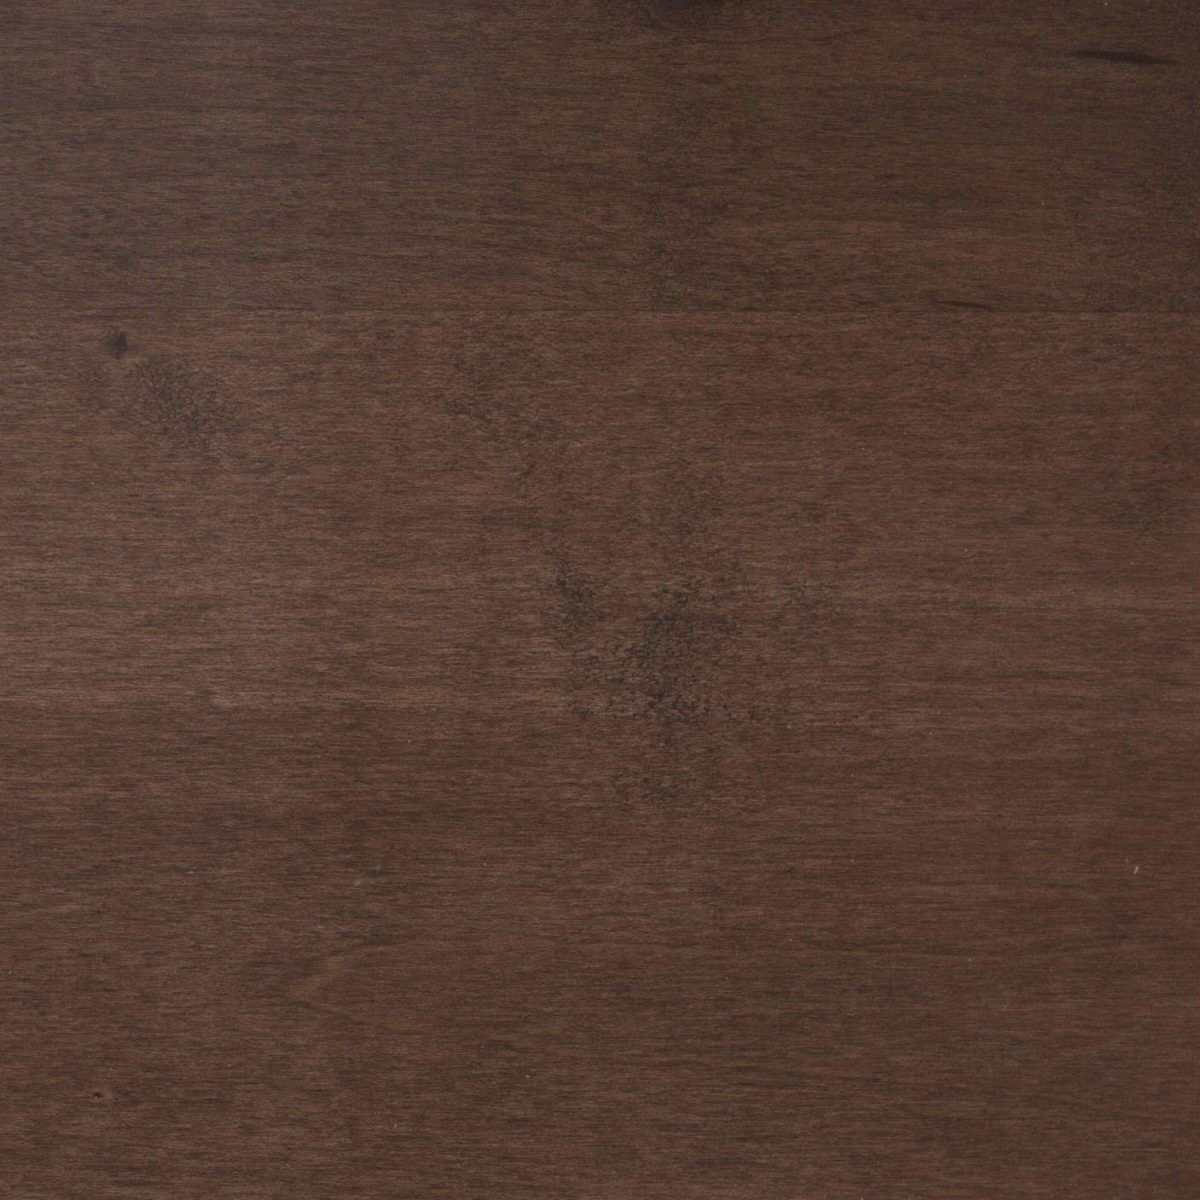 34A Brown Maple Wood Sample